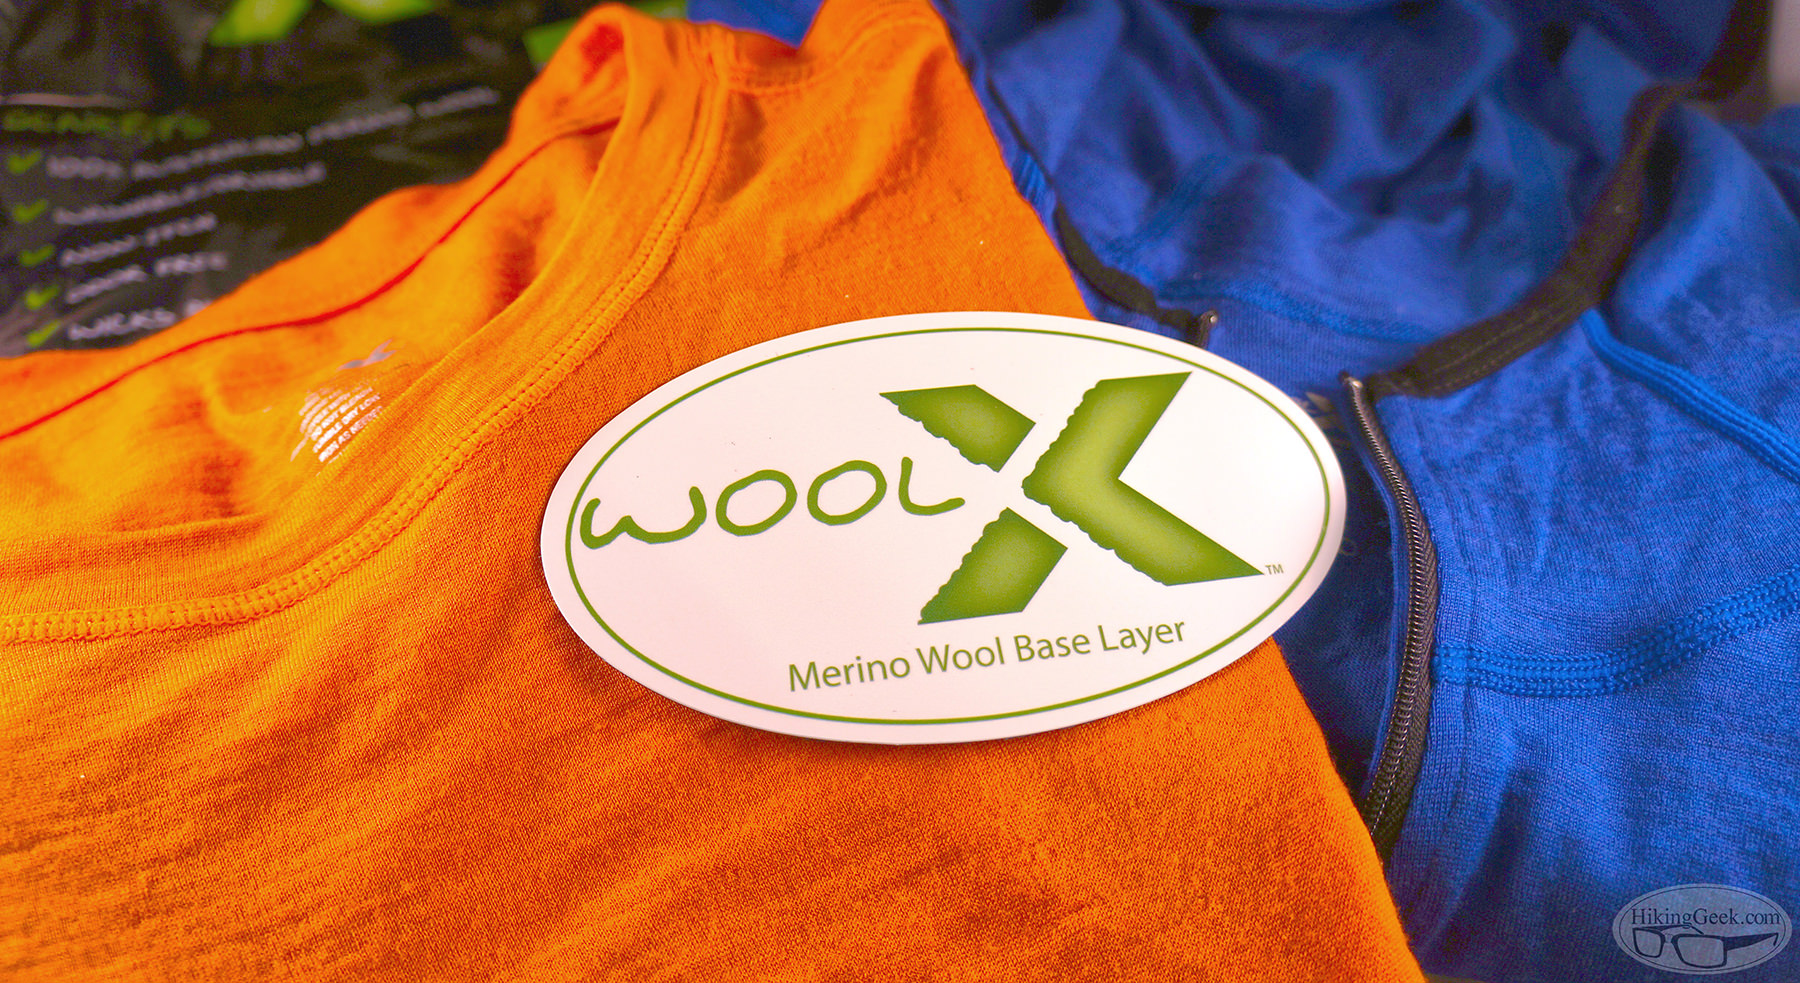 Gear Review: WoolX Lightweight Merino Wool Baselayer Series – T-shirt, Hoodie & Boxers